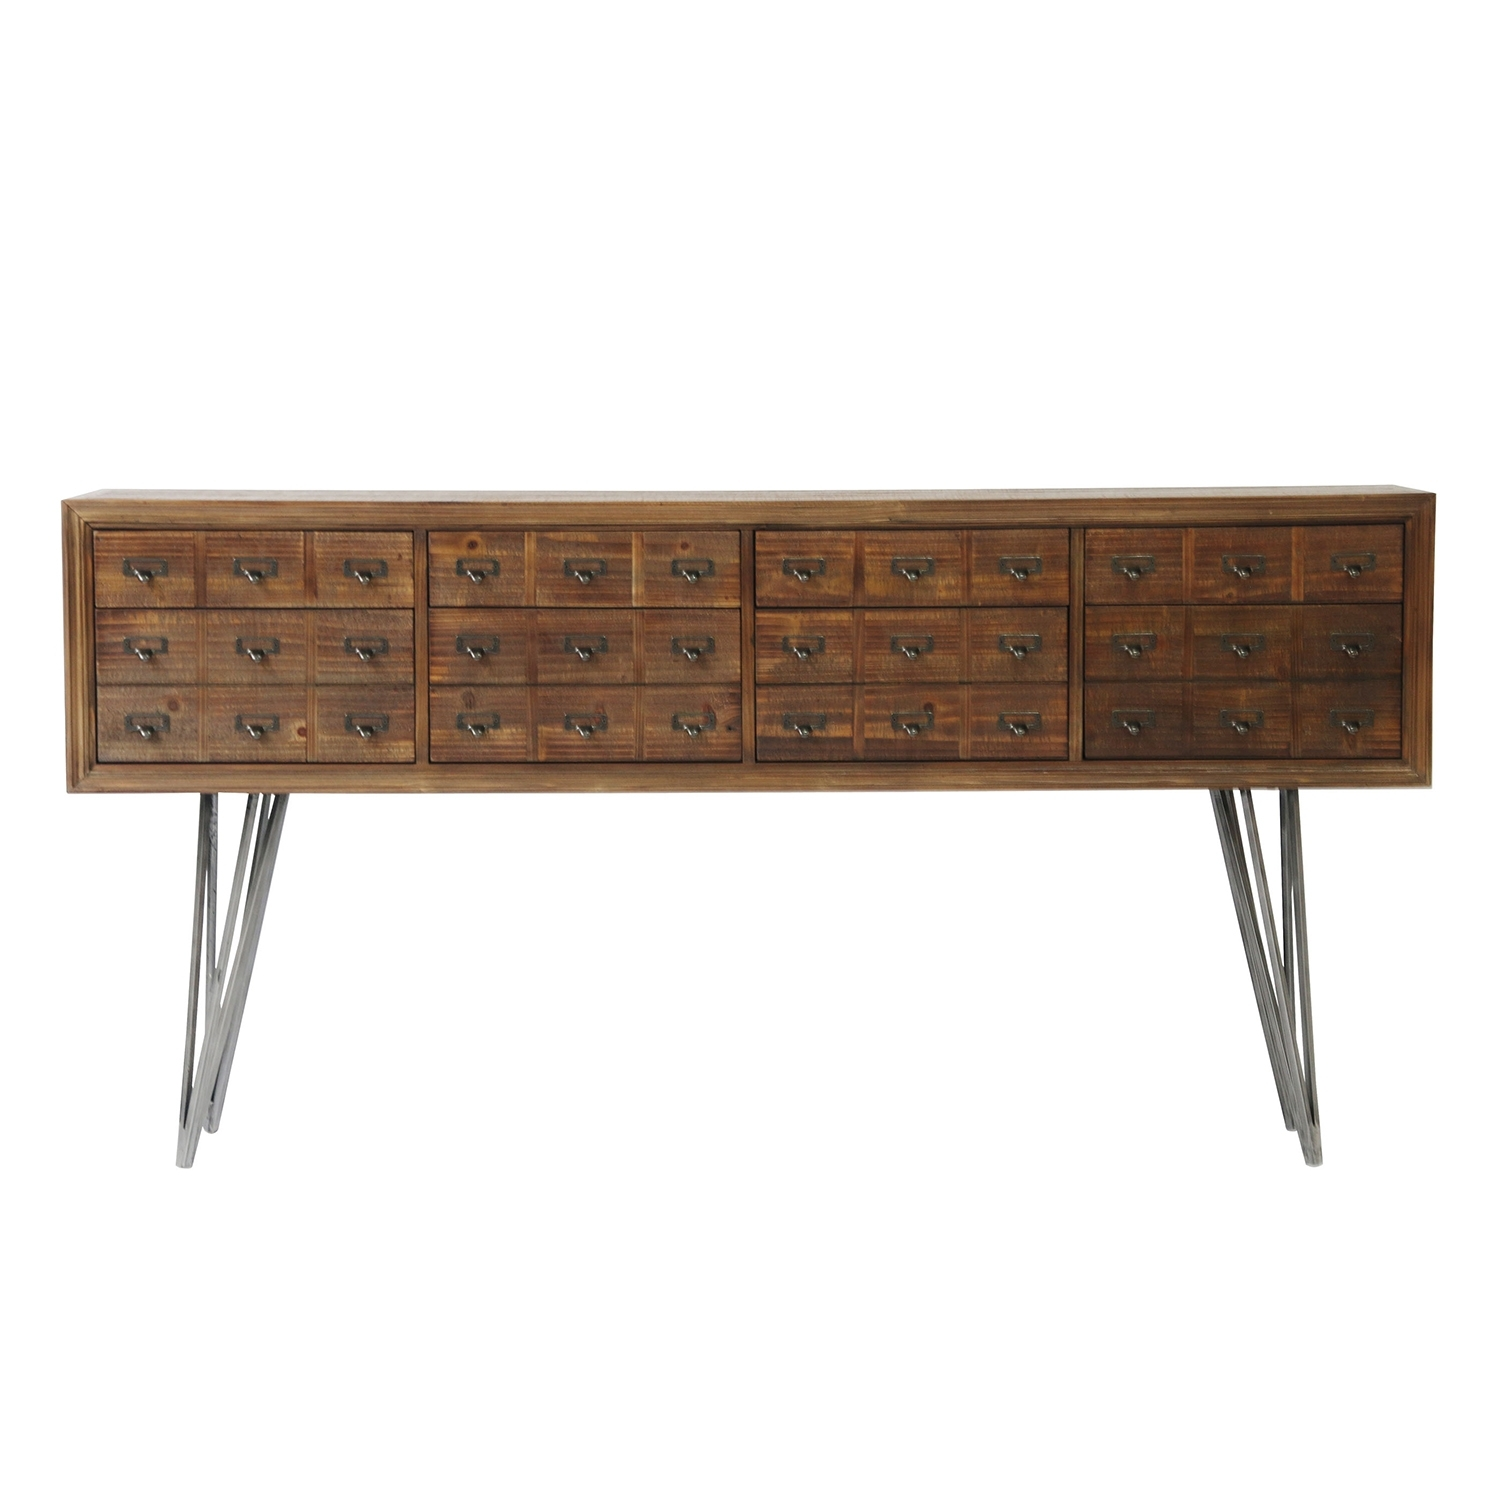 Moe's Home Collection Javadi Sideboard Vl 1005 20   Bellacor within Reclaimed Elm 71 Inch Sideboards (Image 13 of 30)